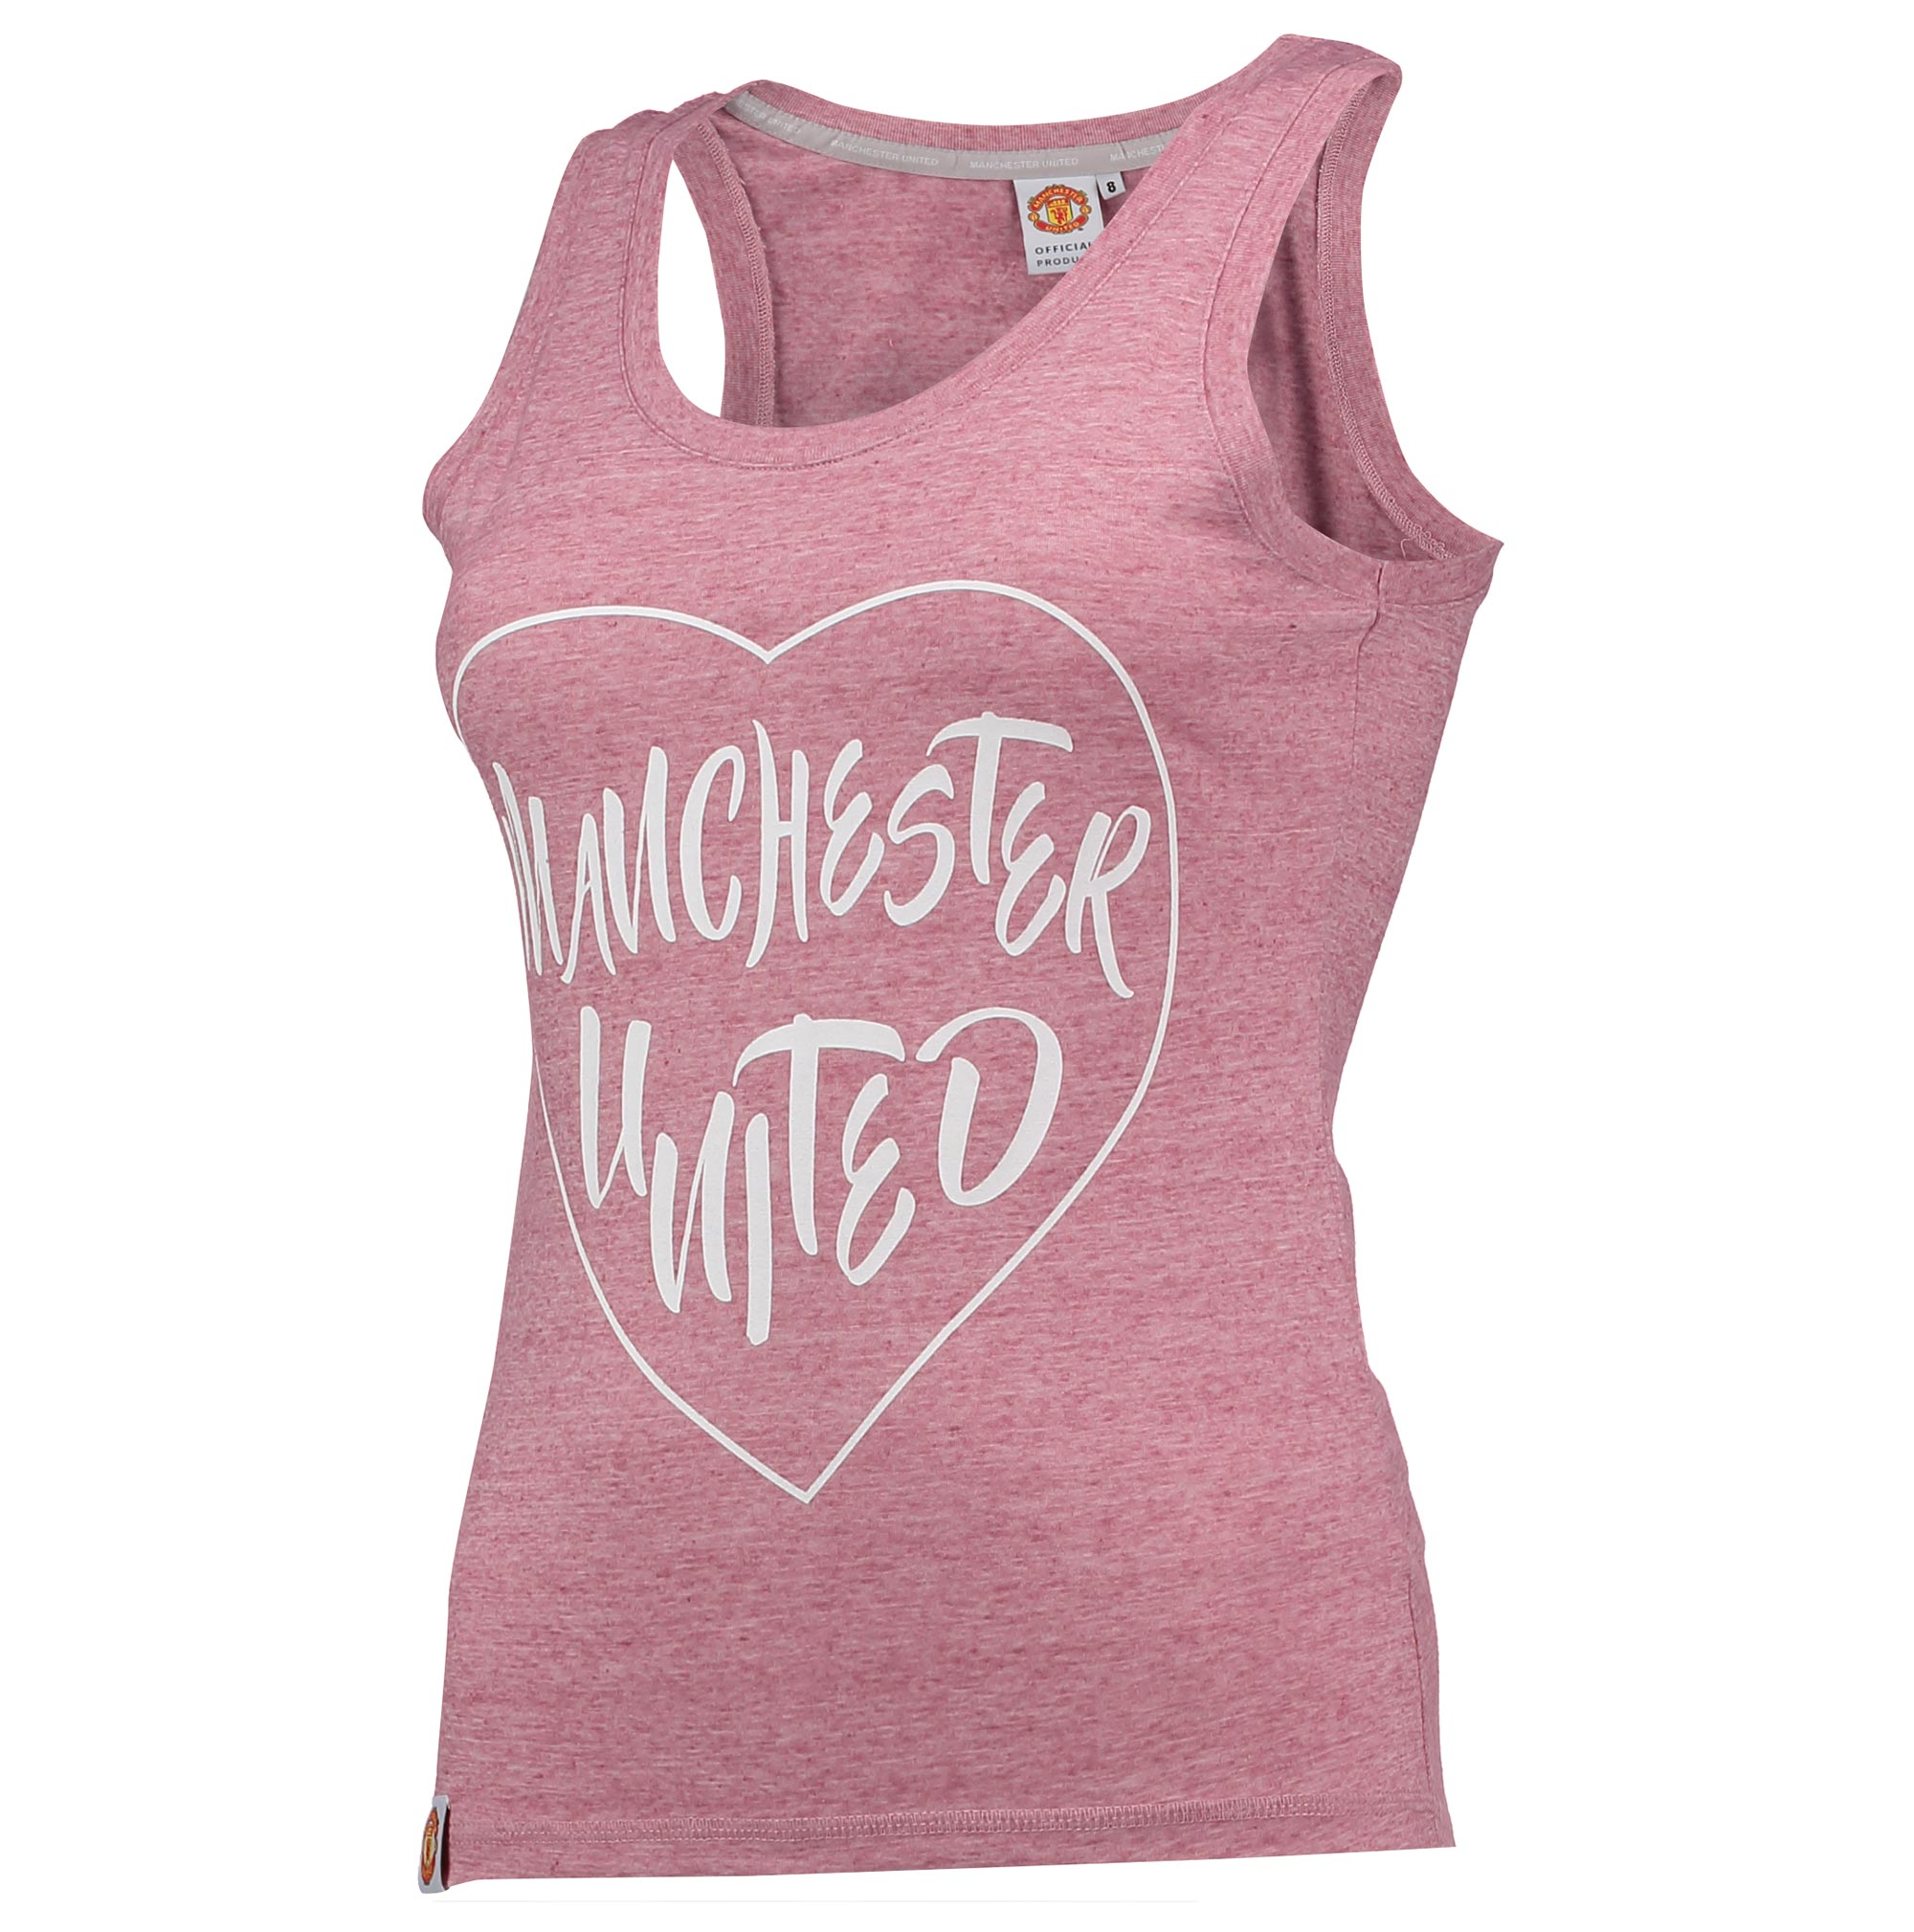 Manchester United Casual Heart Vest - Pink Marl - Womens